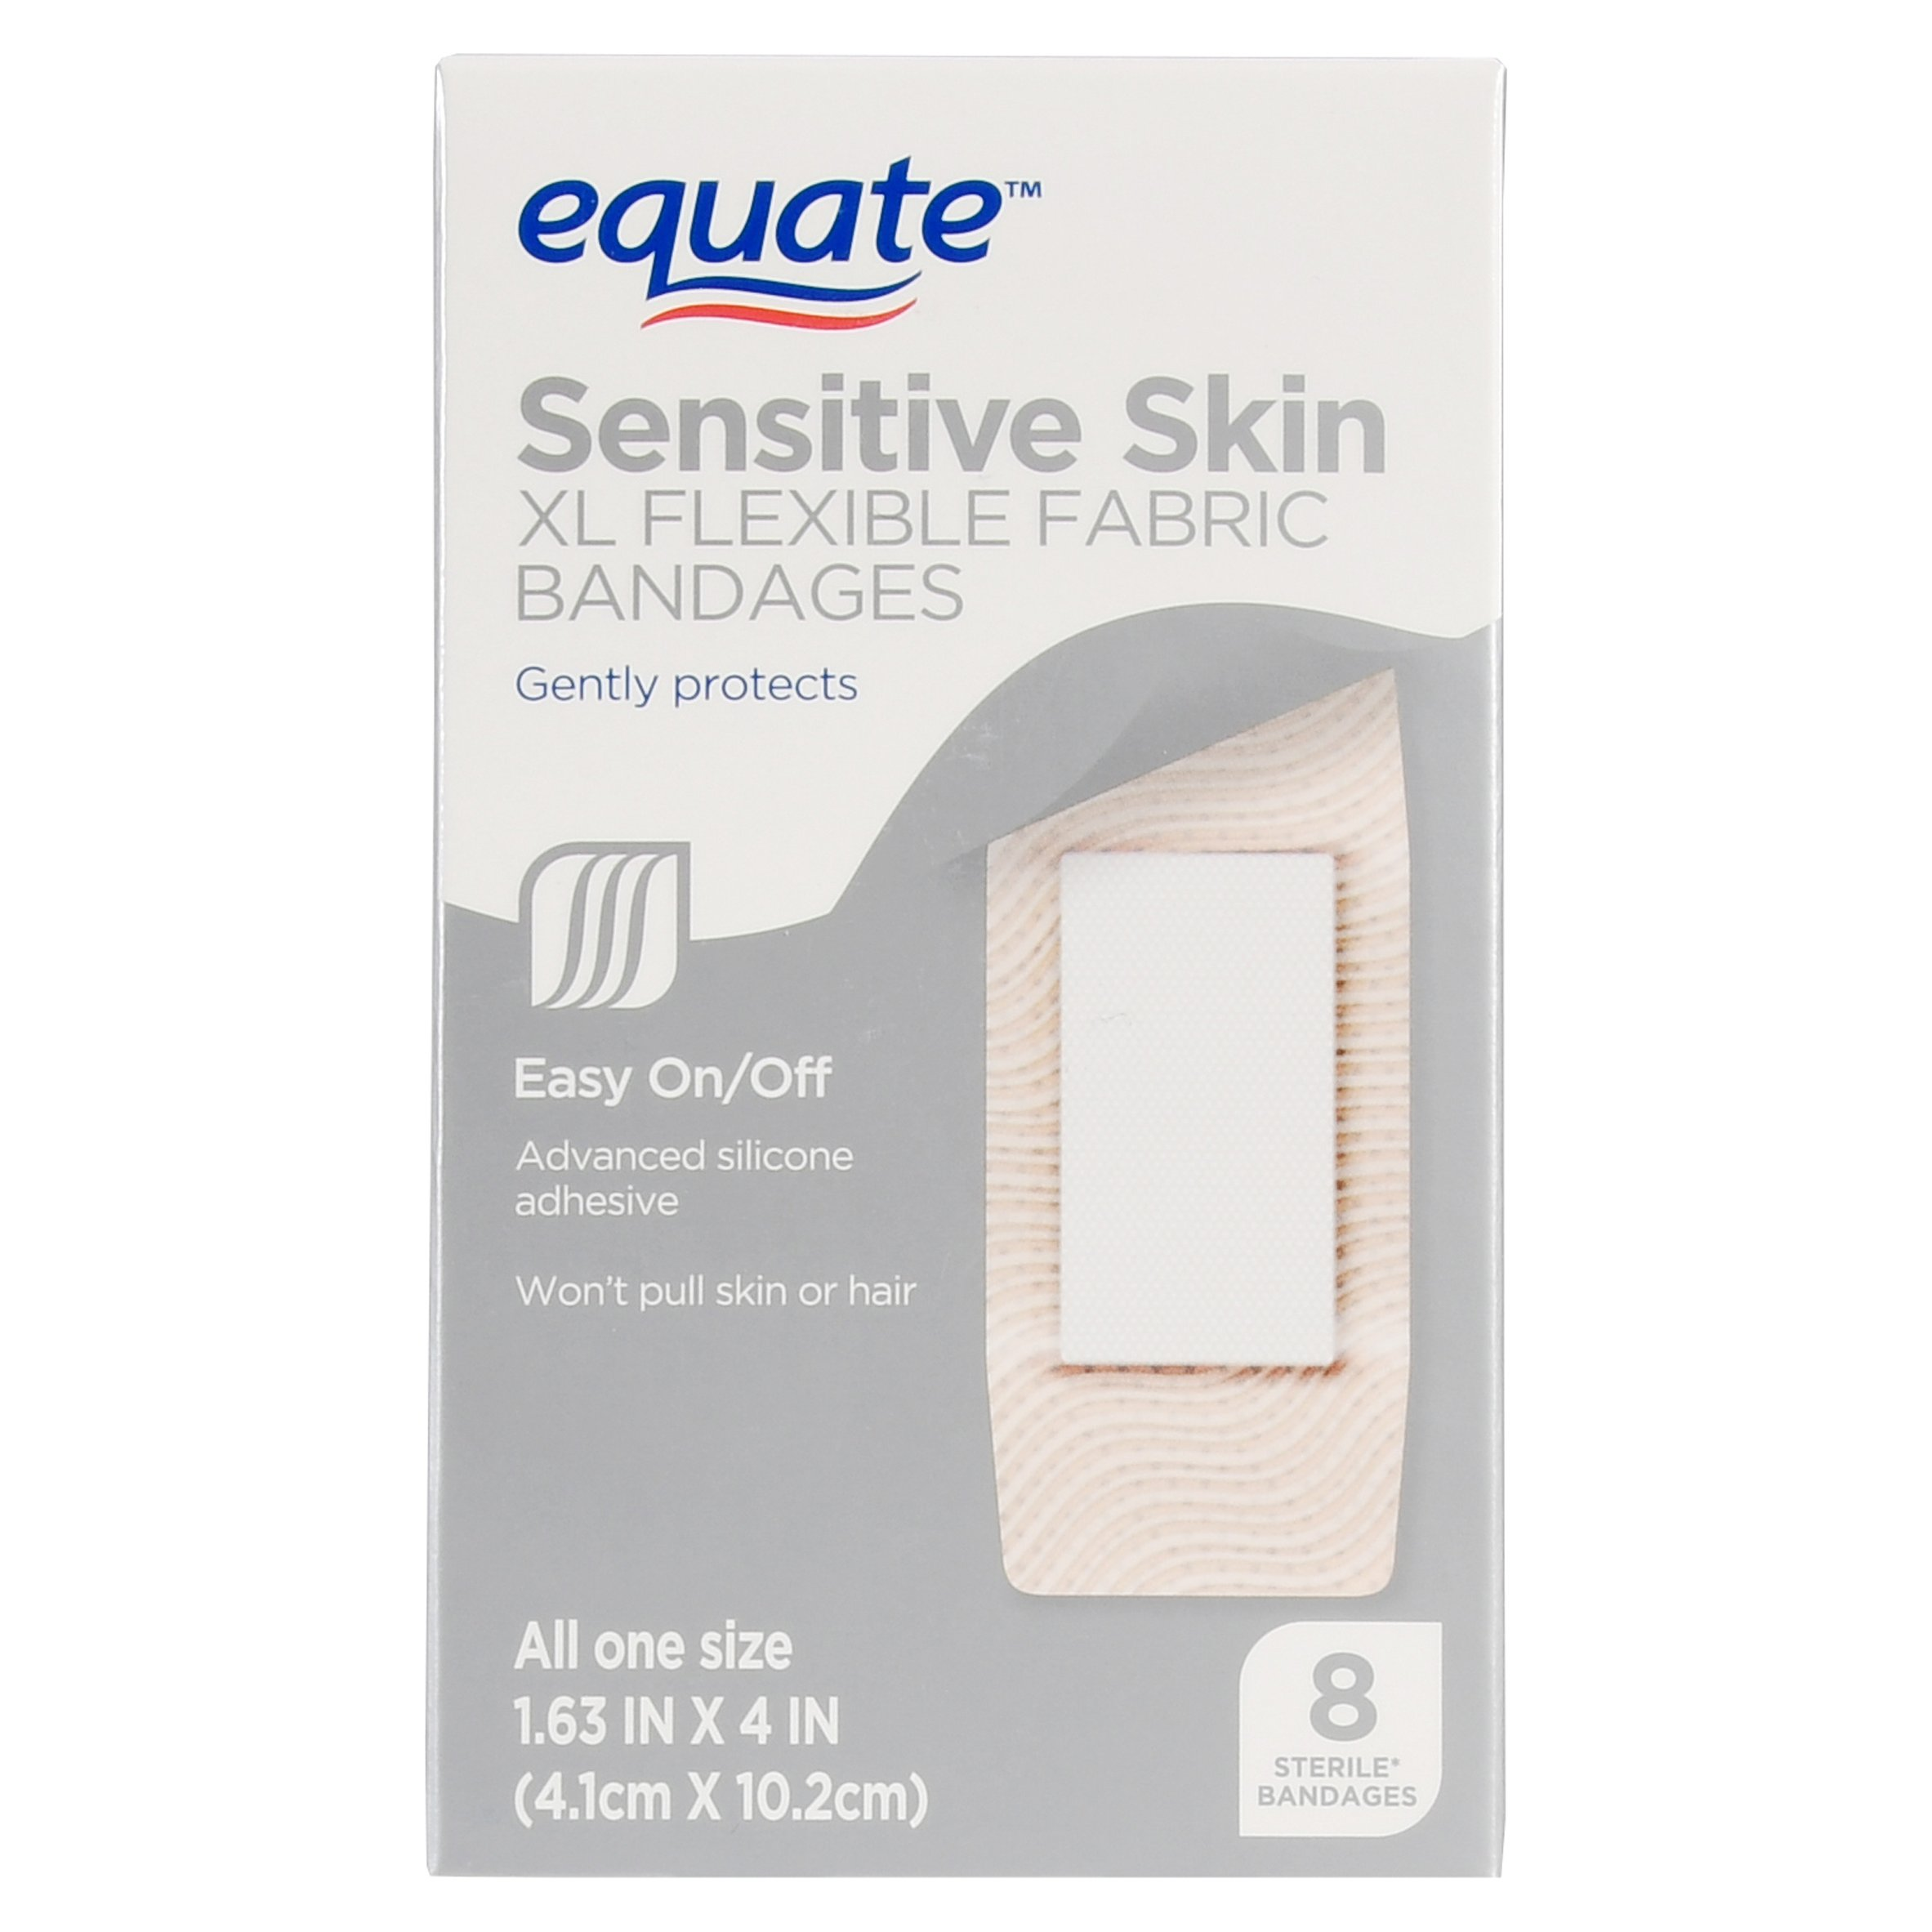 Equate Sensitive Skin XL Flexible Fabric Bandages, 8 Ct